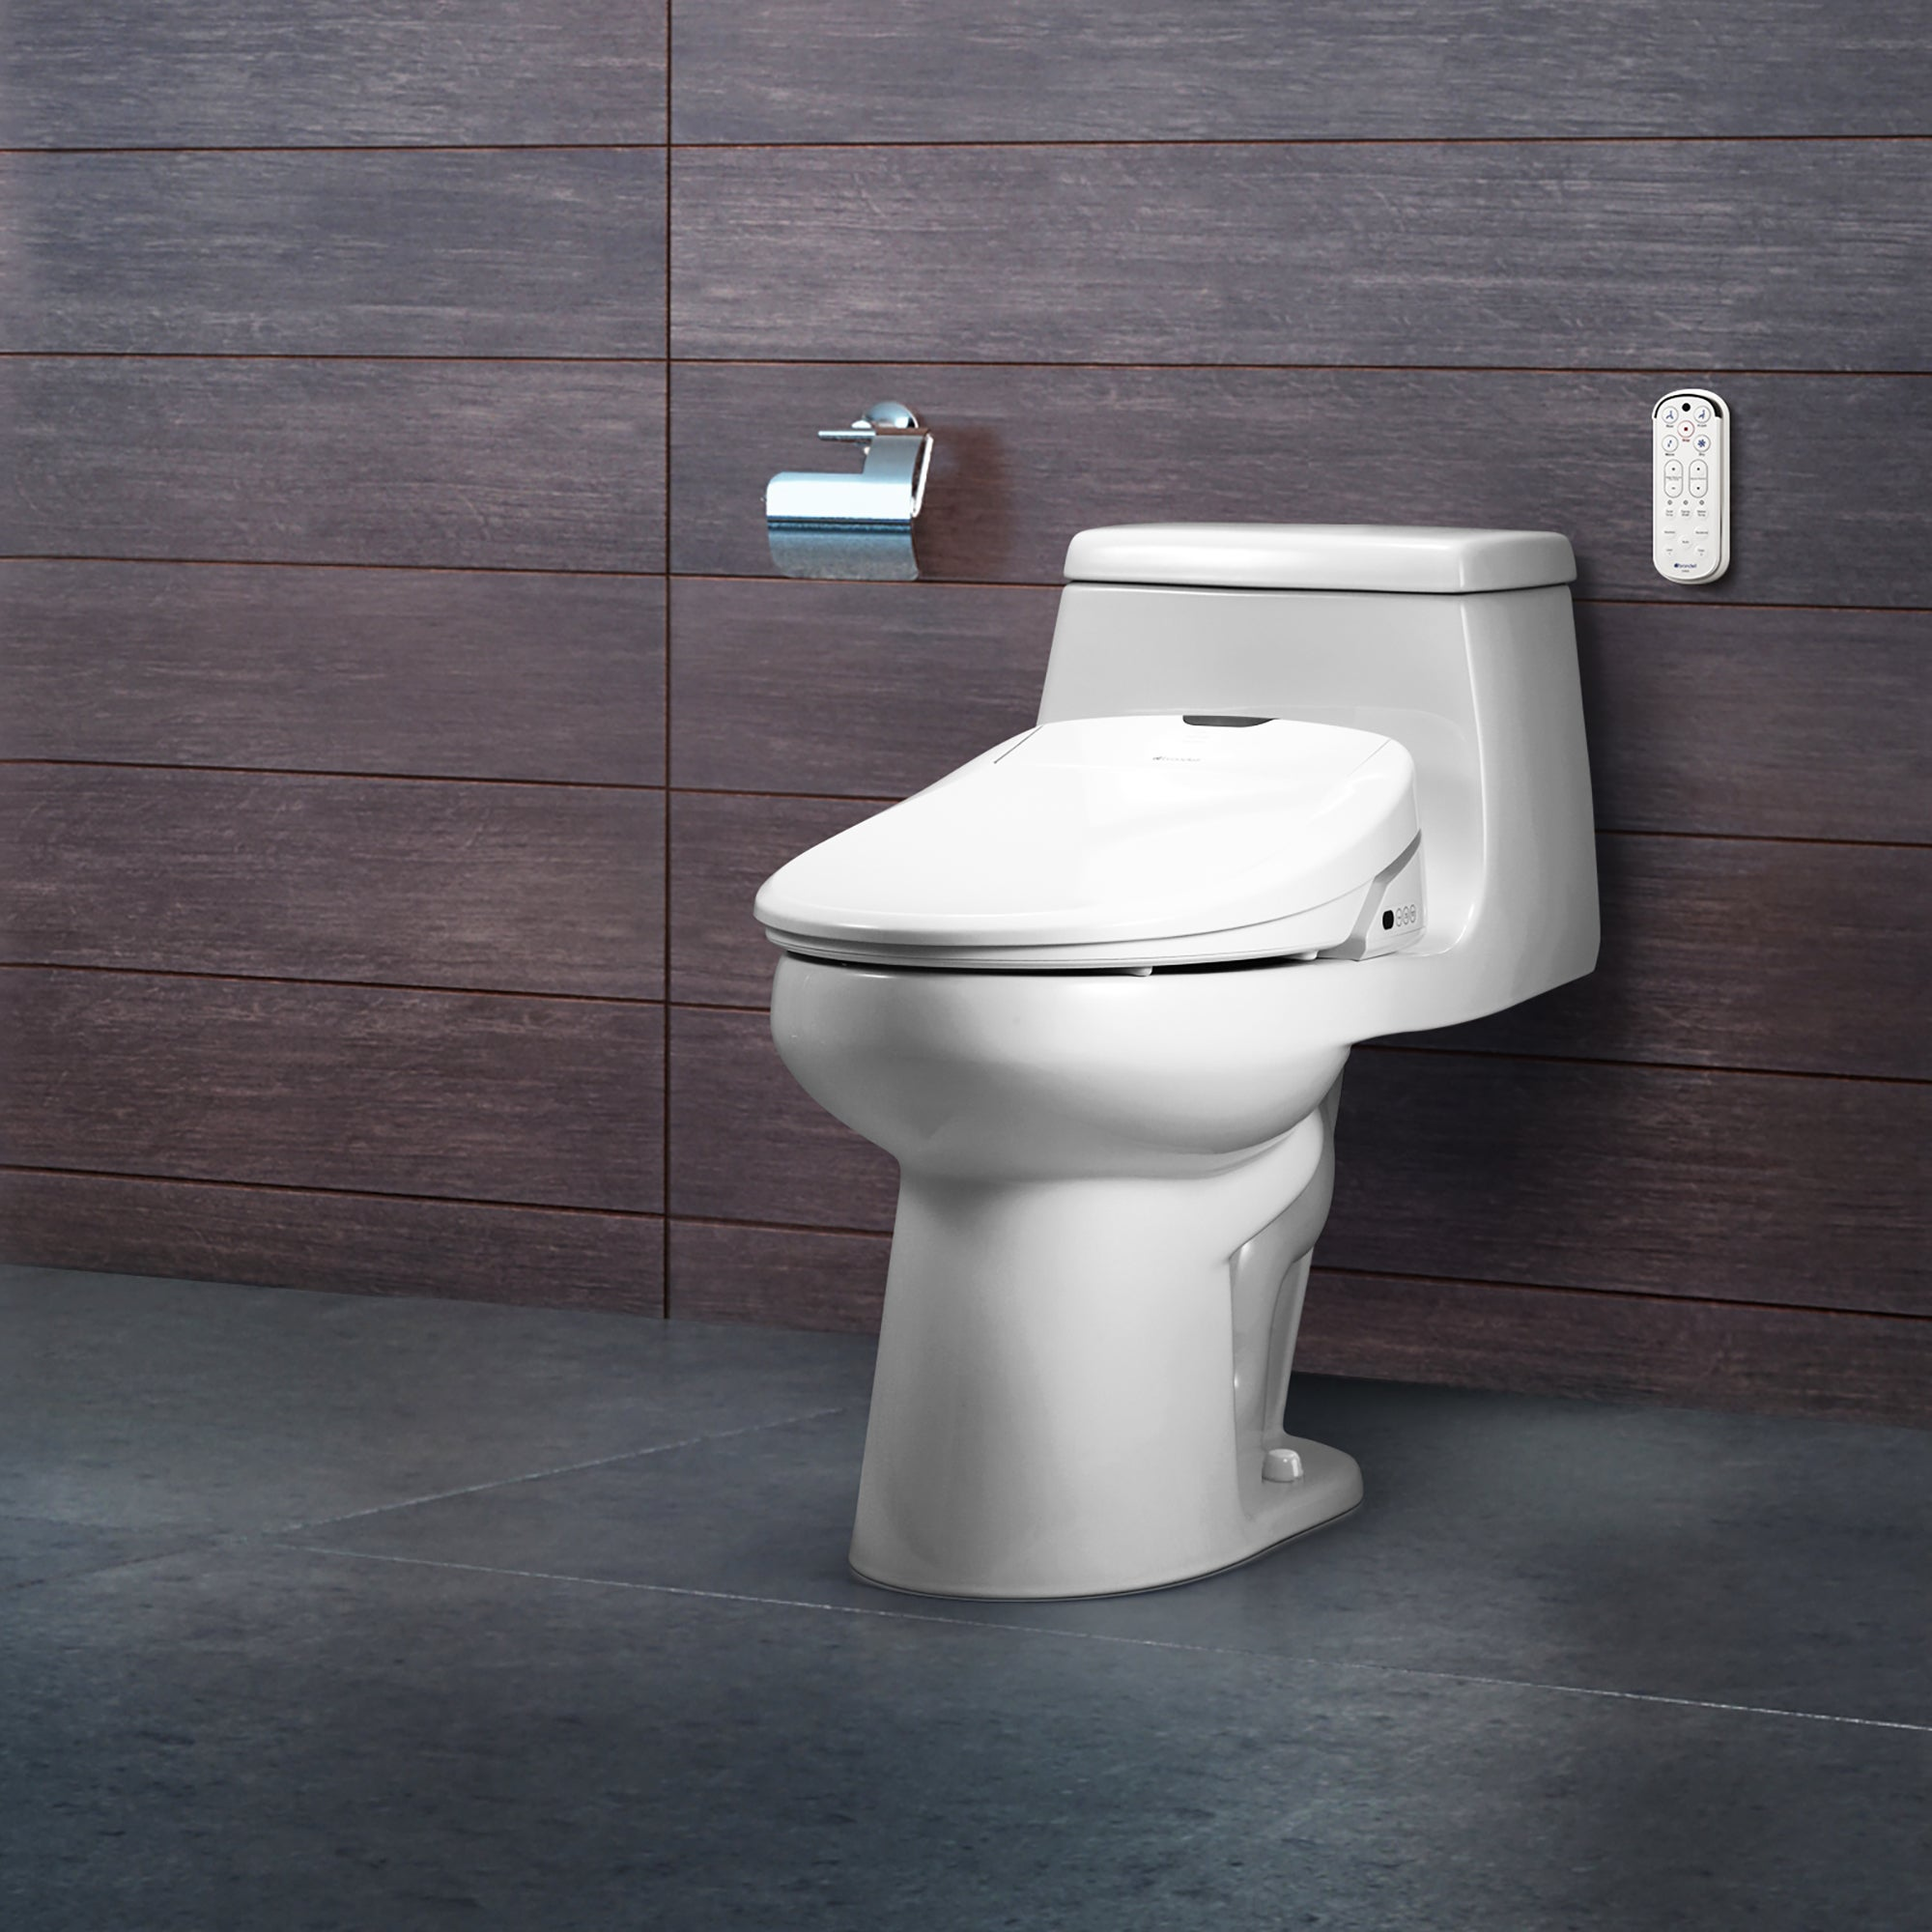 good sfb bidet beans beers toilet for huh it is and what bathroom